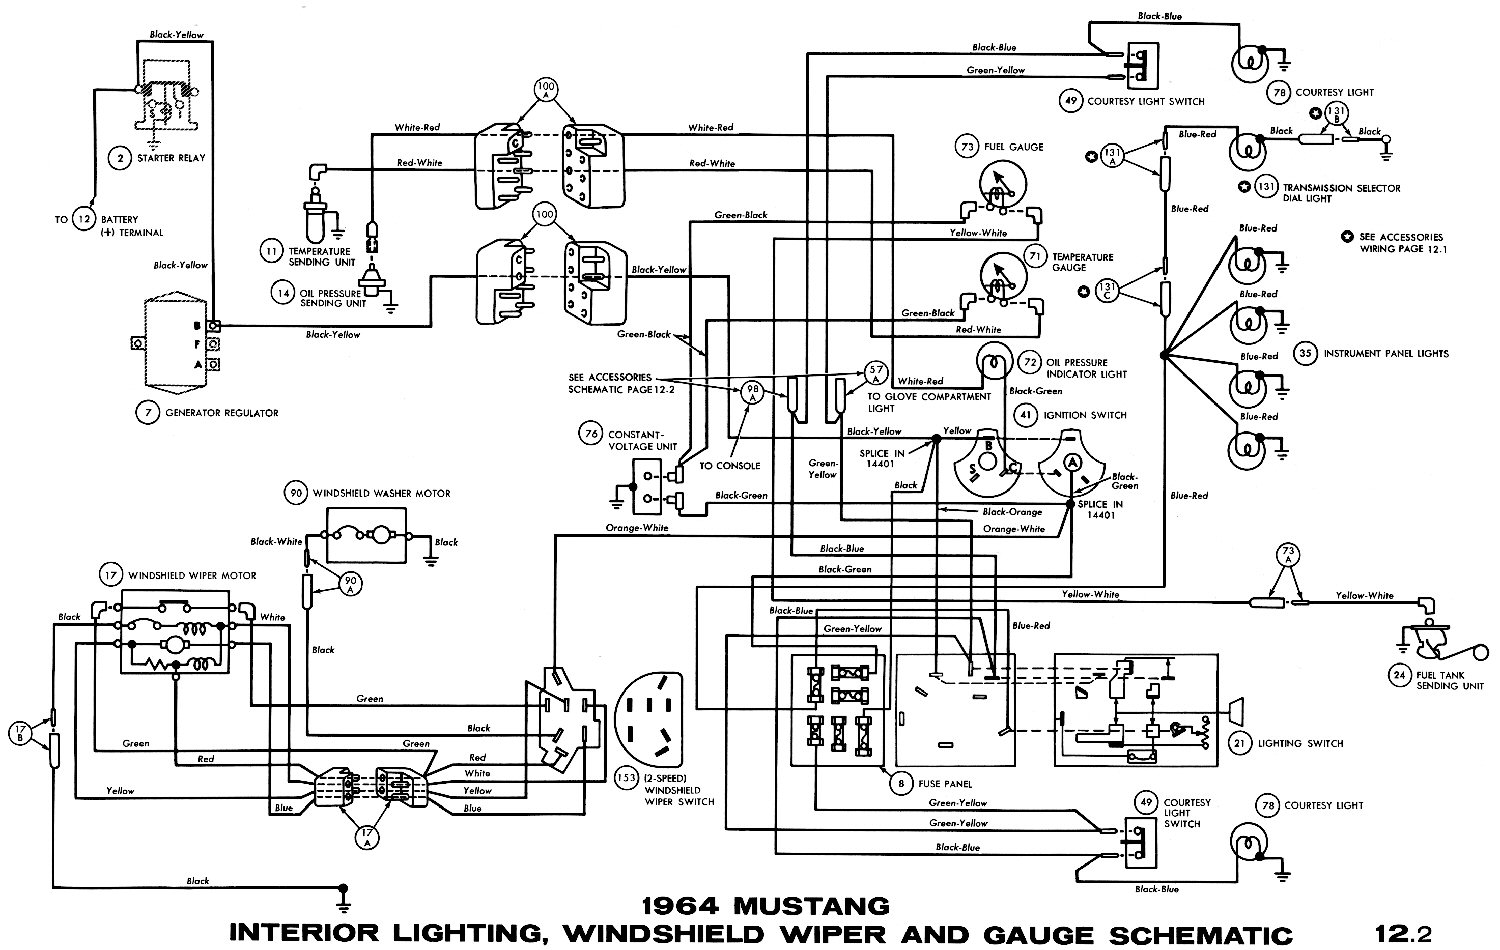 1964 mustang wiring diagrams average joe restoration rh averagejoerestoration com 1969 mustang wiring diagram 1965 mustang wiring diagram pdf